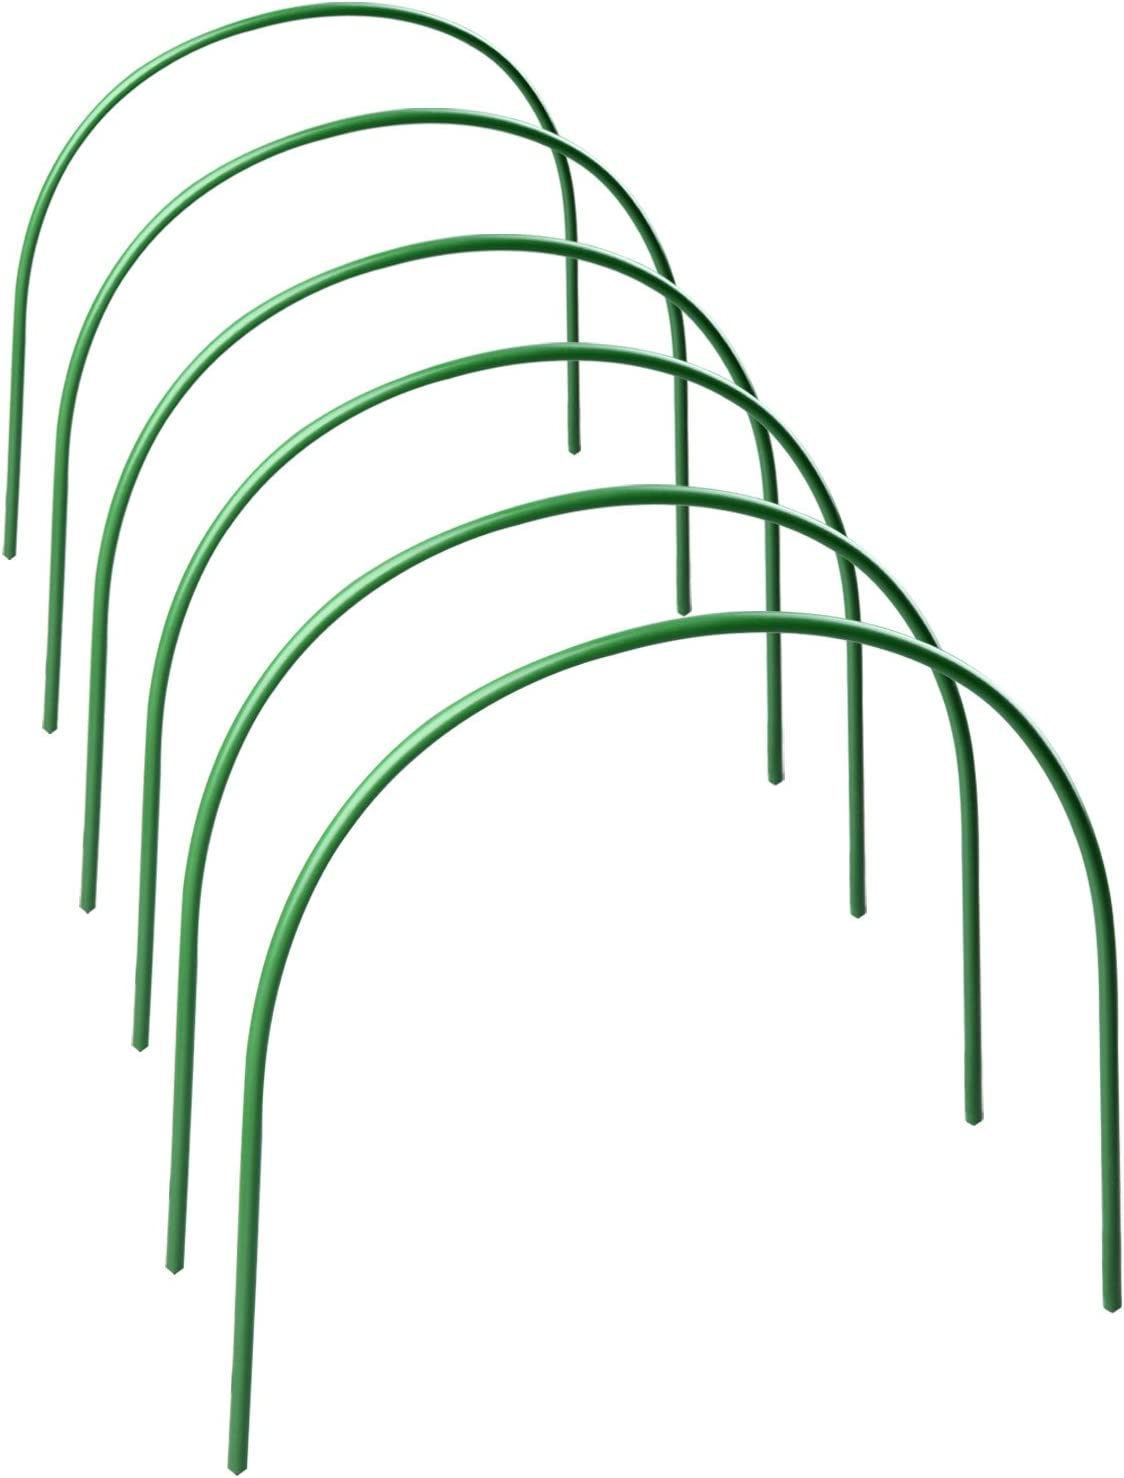 æ— Same day shipping 12 Pcs Garden Support Rust-Free Grow Greenhouse Hoops Cheap sale